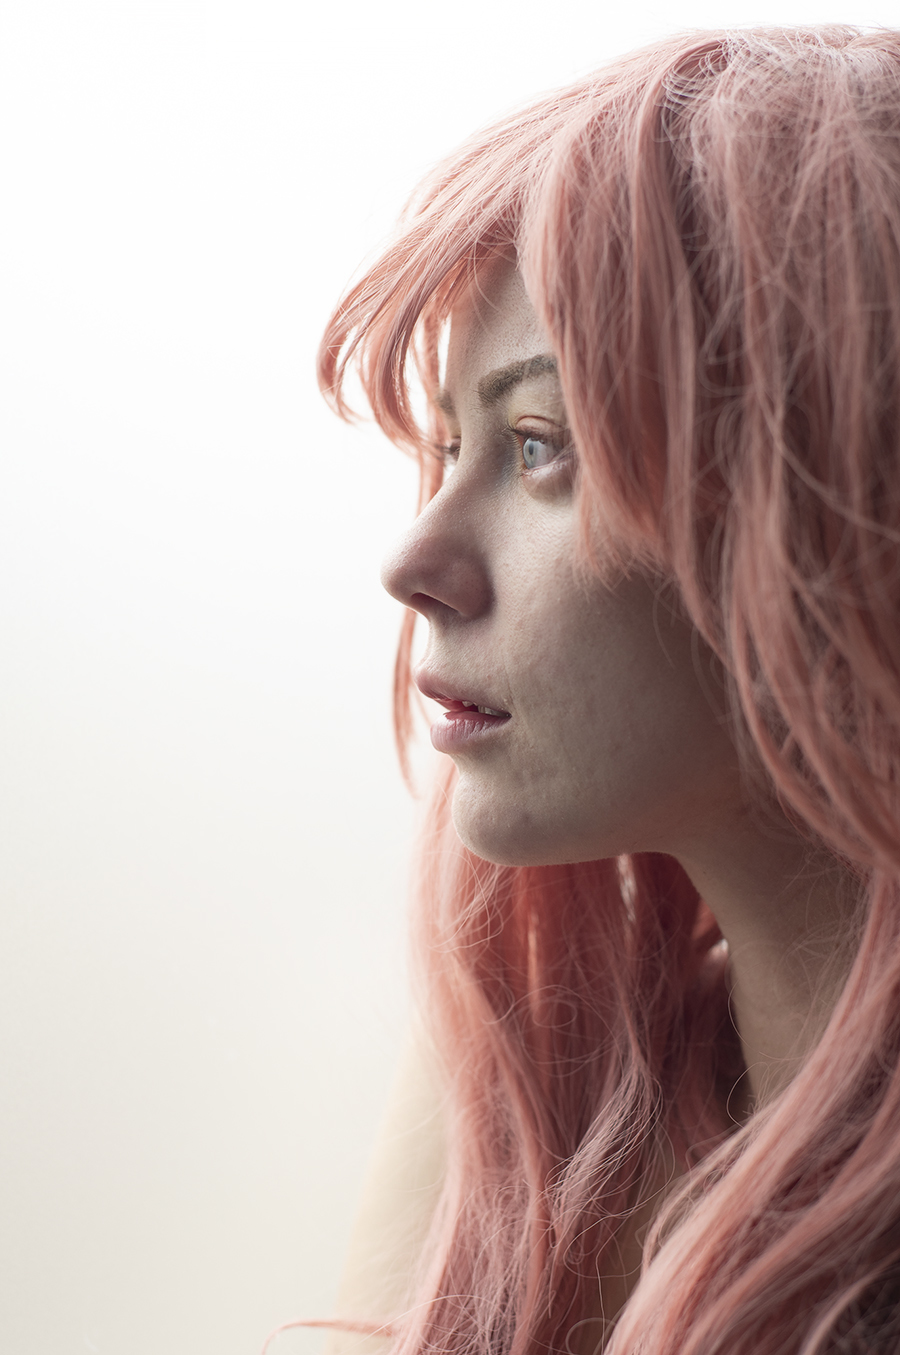 Jessica / Photography by Dag Nammett, Model Jessica Buckland, Taken at TankSpace / Uploaded 17th October 2020 @ 01:04 PM